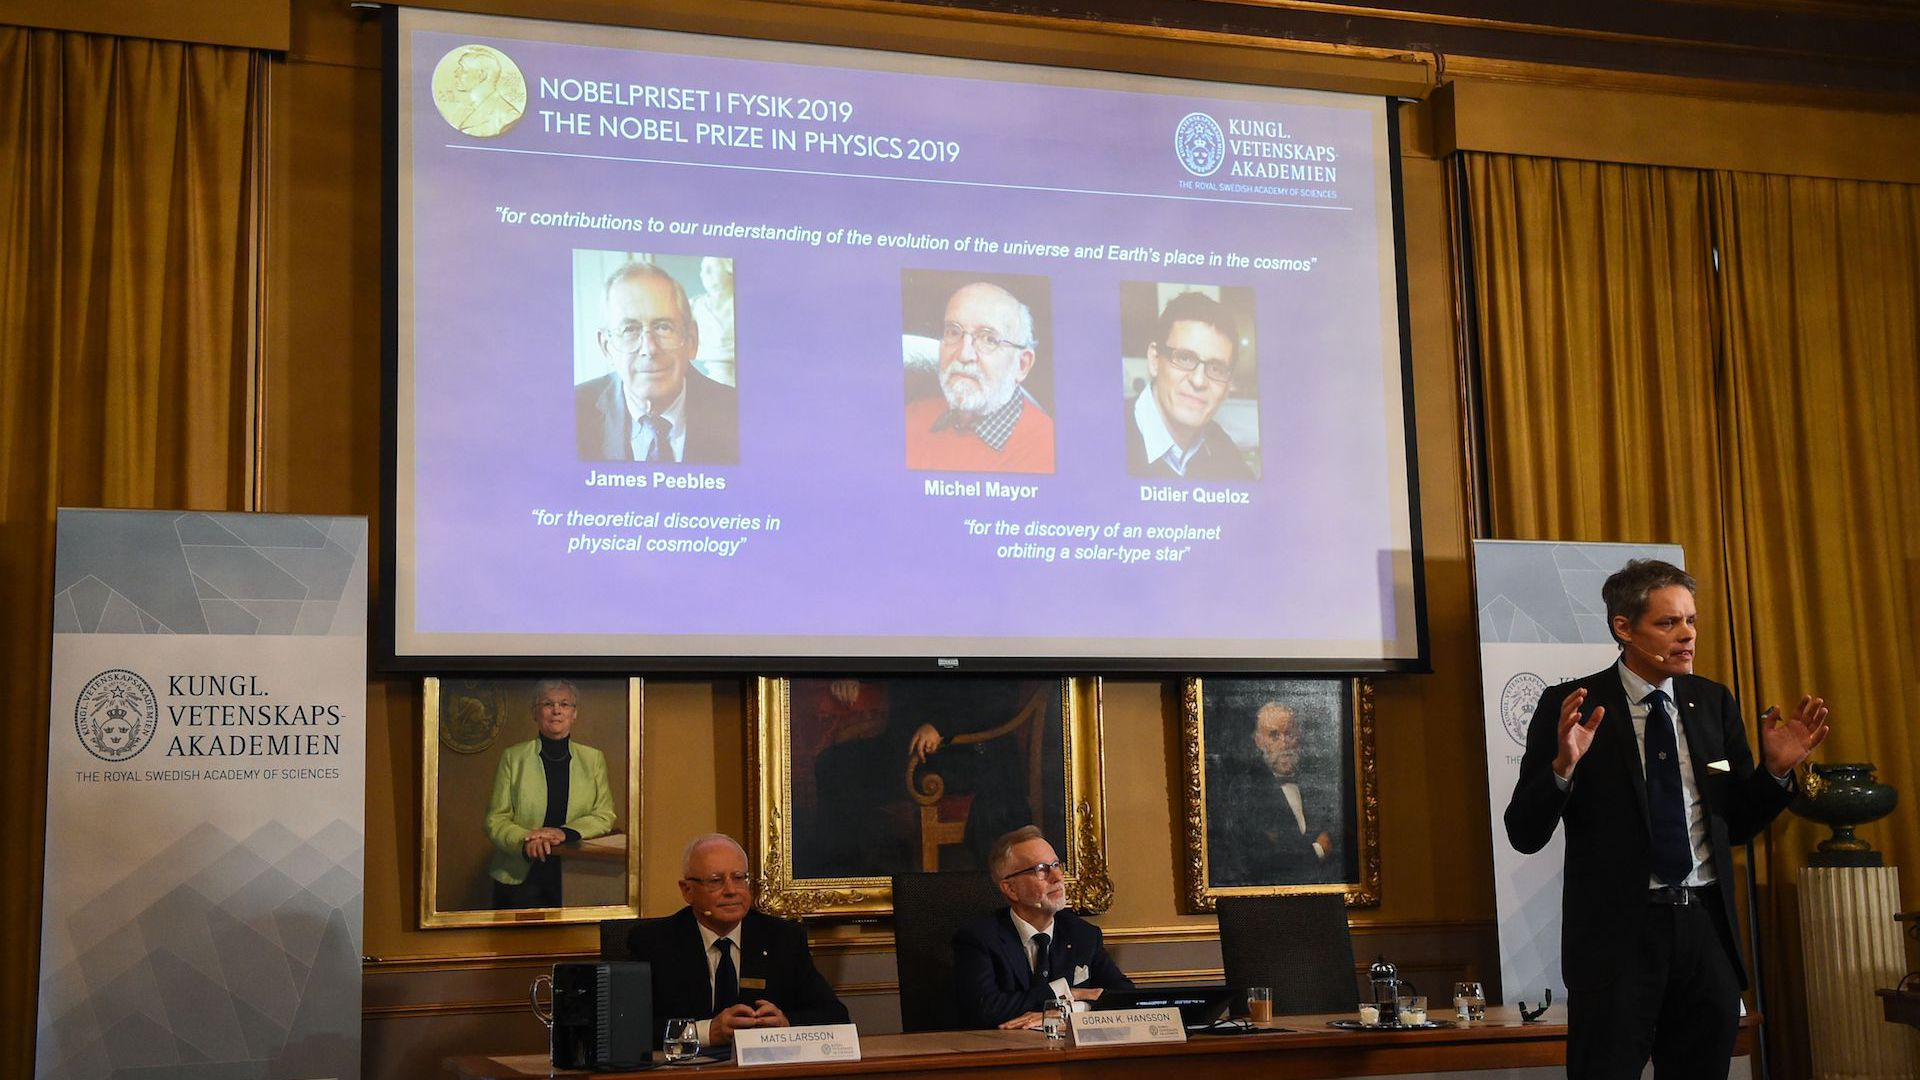 3 scientists win Nobel Prize in physics for discoveries in exoplanets, cosmology